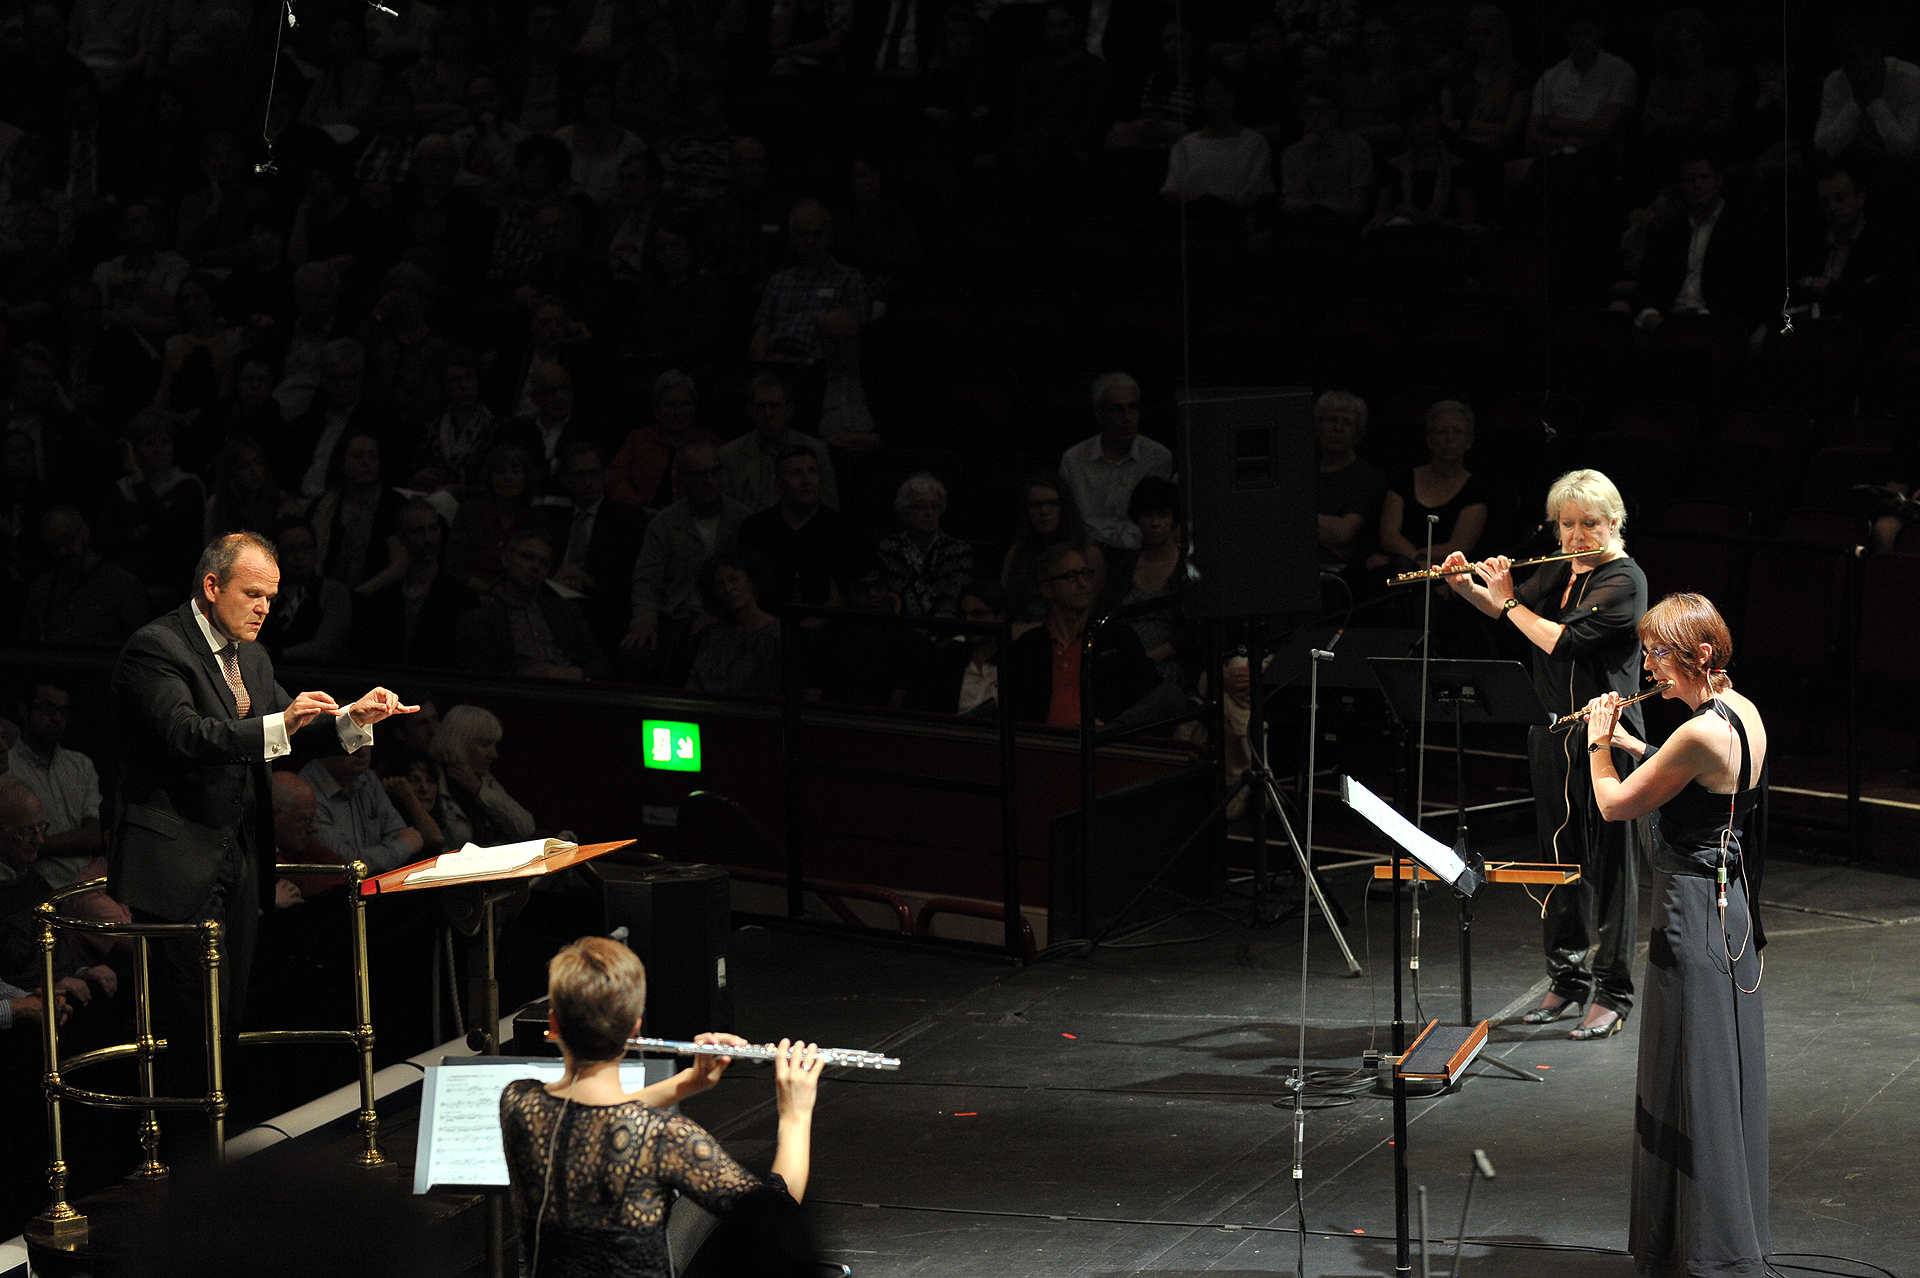 Sophie Cherrier, Dagmar Becker and Anne Romeis in a BBC Proms performance of ...explosante-fixe...